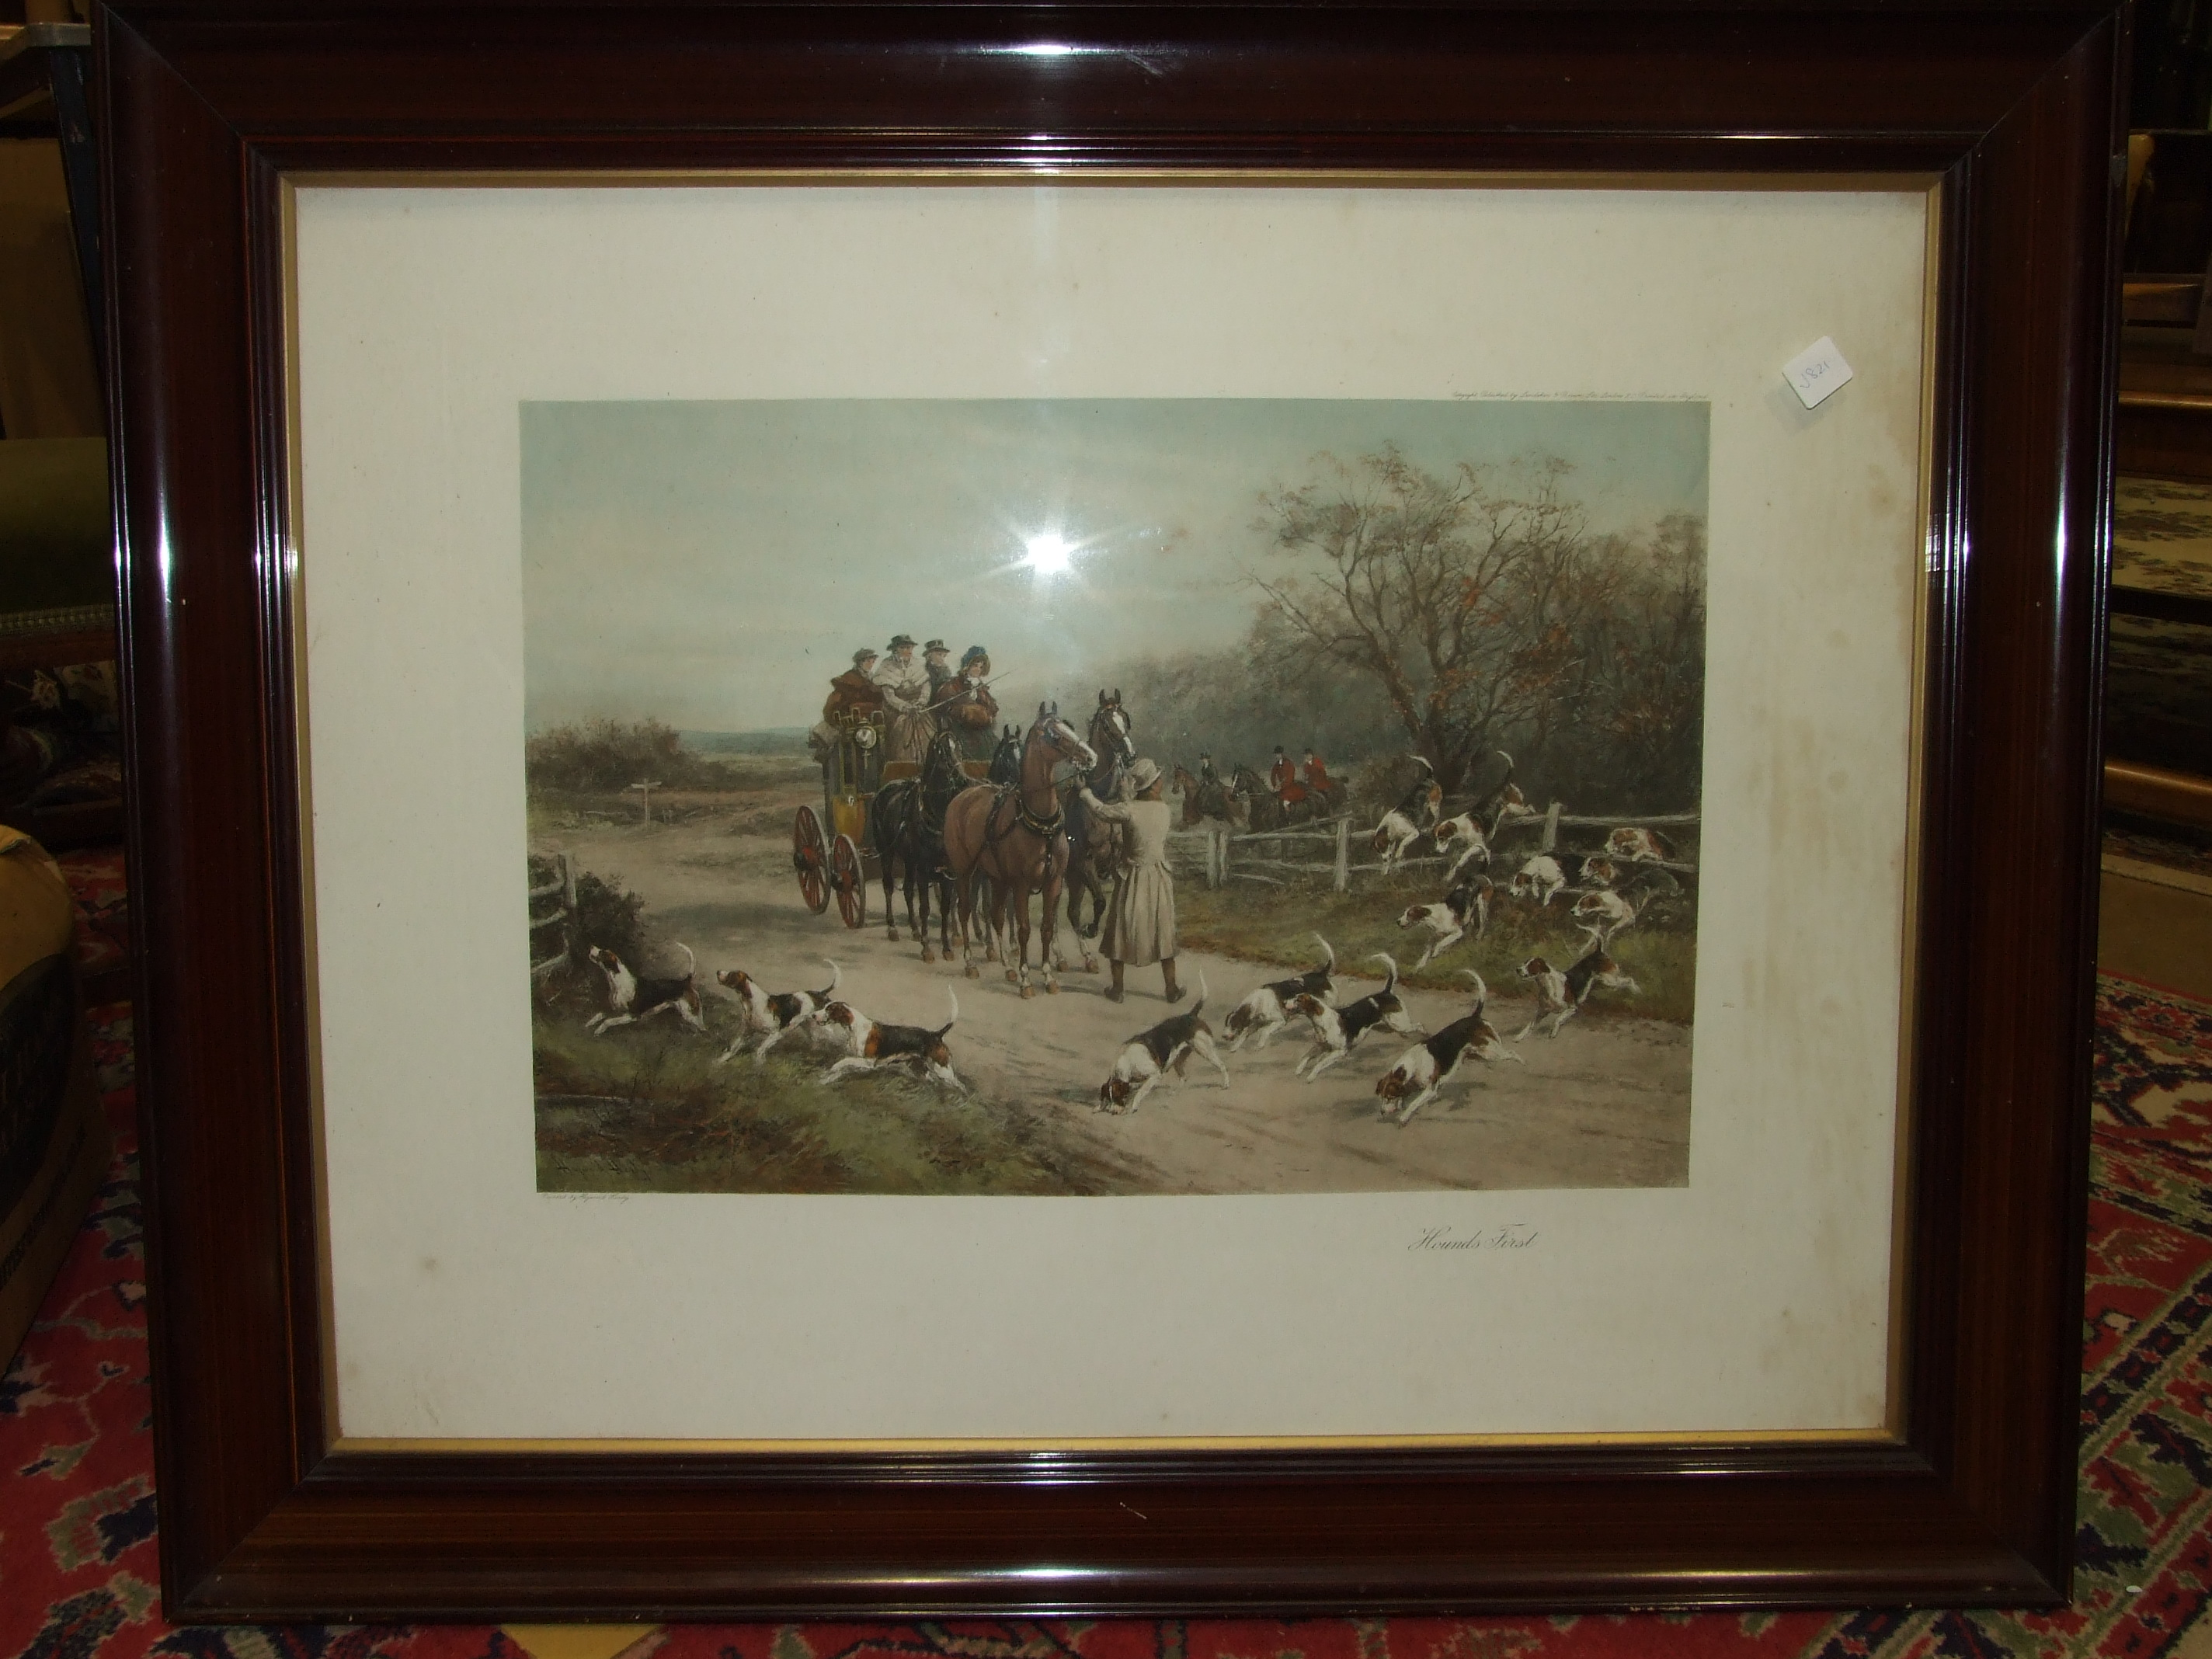 Lot 41 - After Hayward Hardy, Hounds First, a coloured print, 53 x 70cm and a companion, Forward Away, a